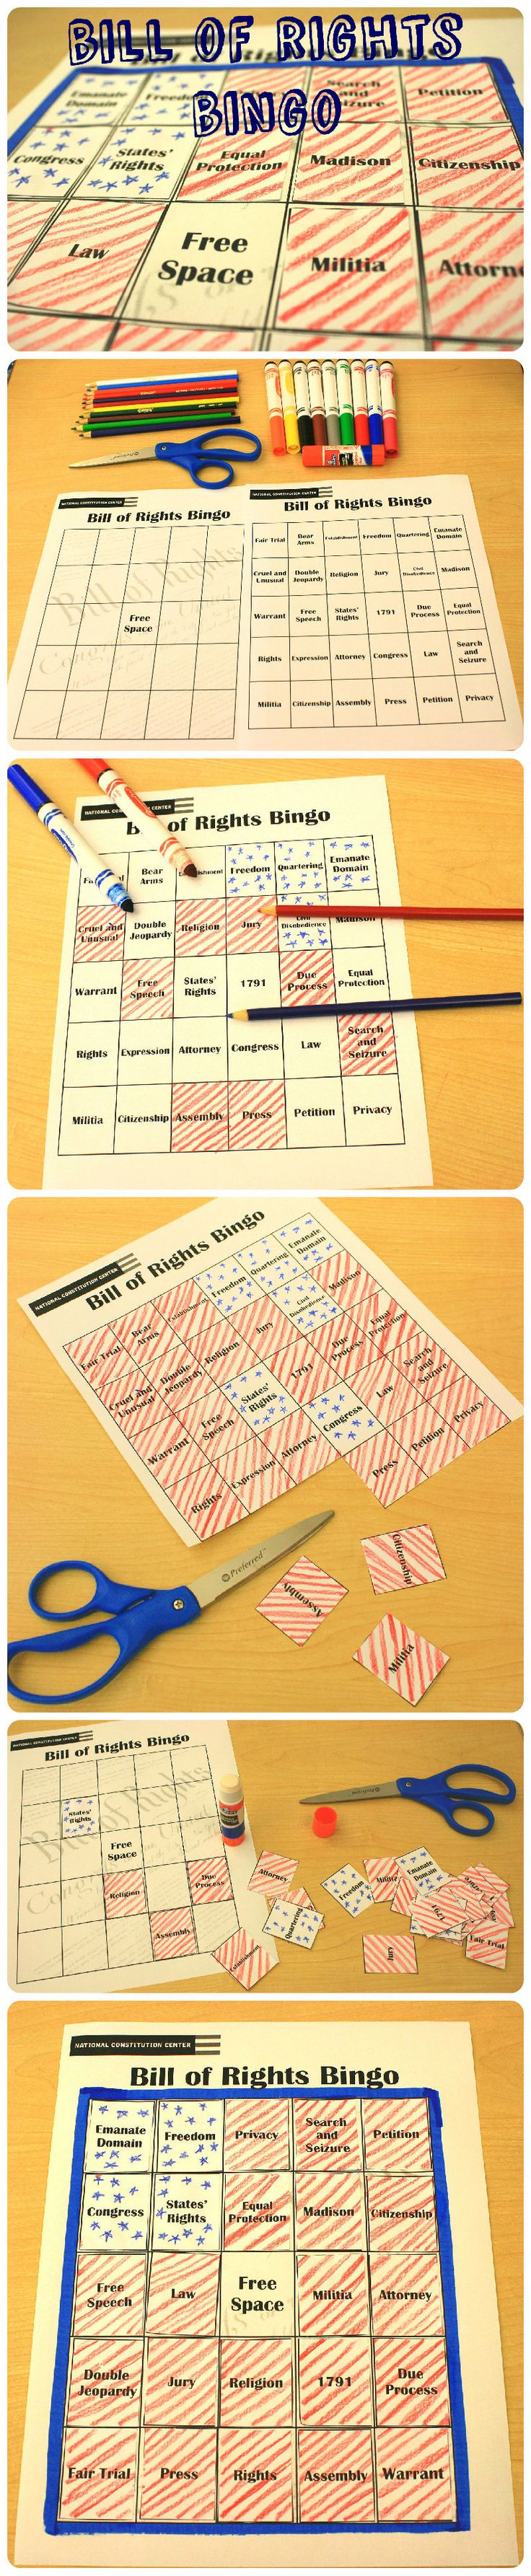 Throughout #July4th or even just watching the news, listen for these important terms and mark off the squares on the board. How quickly can you fill your board? Great for kids to get more familiar with The Bill of Rights. #DIY